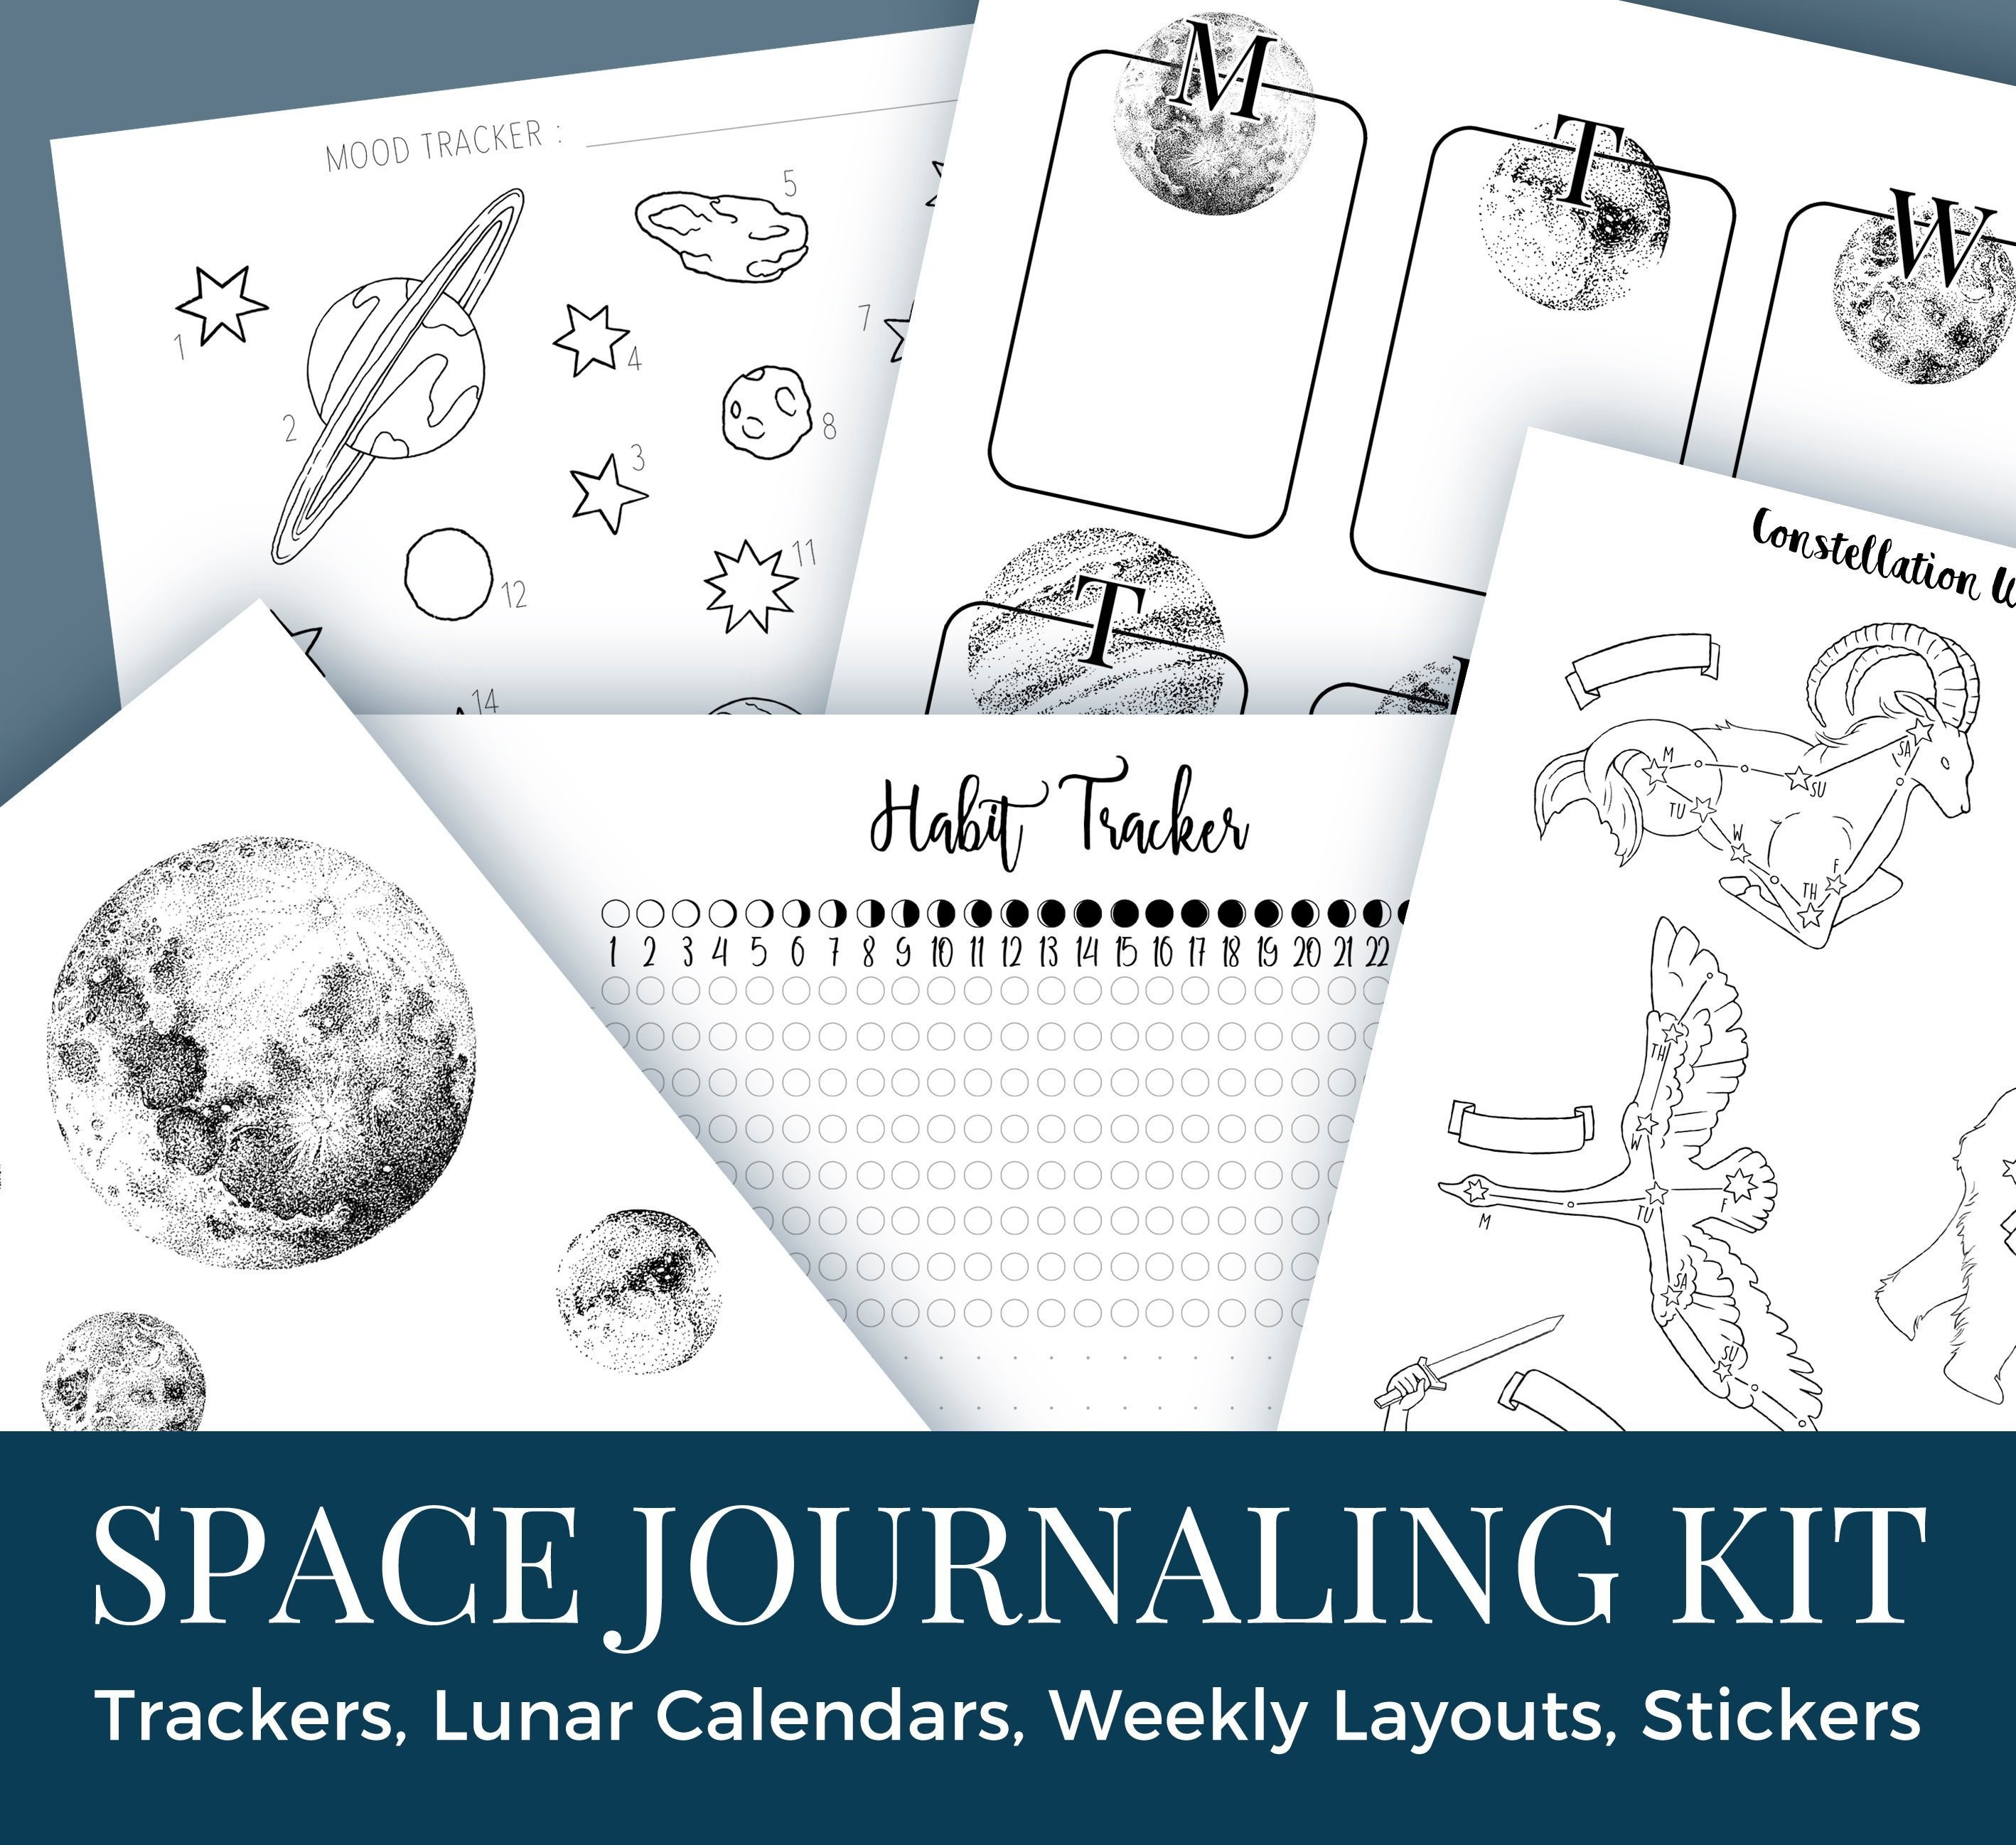 March 2019 Calendar Sri Lanka Más Caliente 2019 Bullet Journal Space Kit Printable Moon & Stars Of March 2019 Calendar Sri Lanka Más Arriba-a-fecha Sri Lanka Permanent Mission to the United Nations